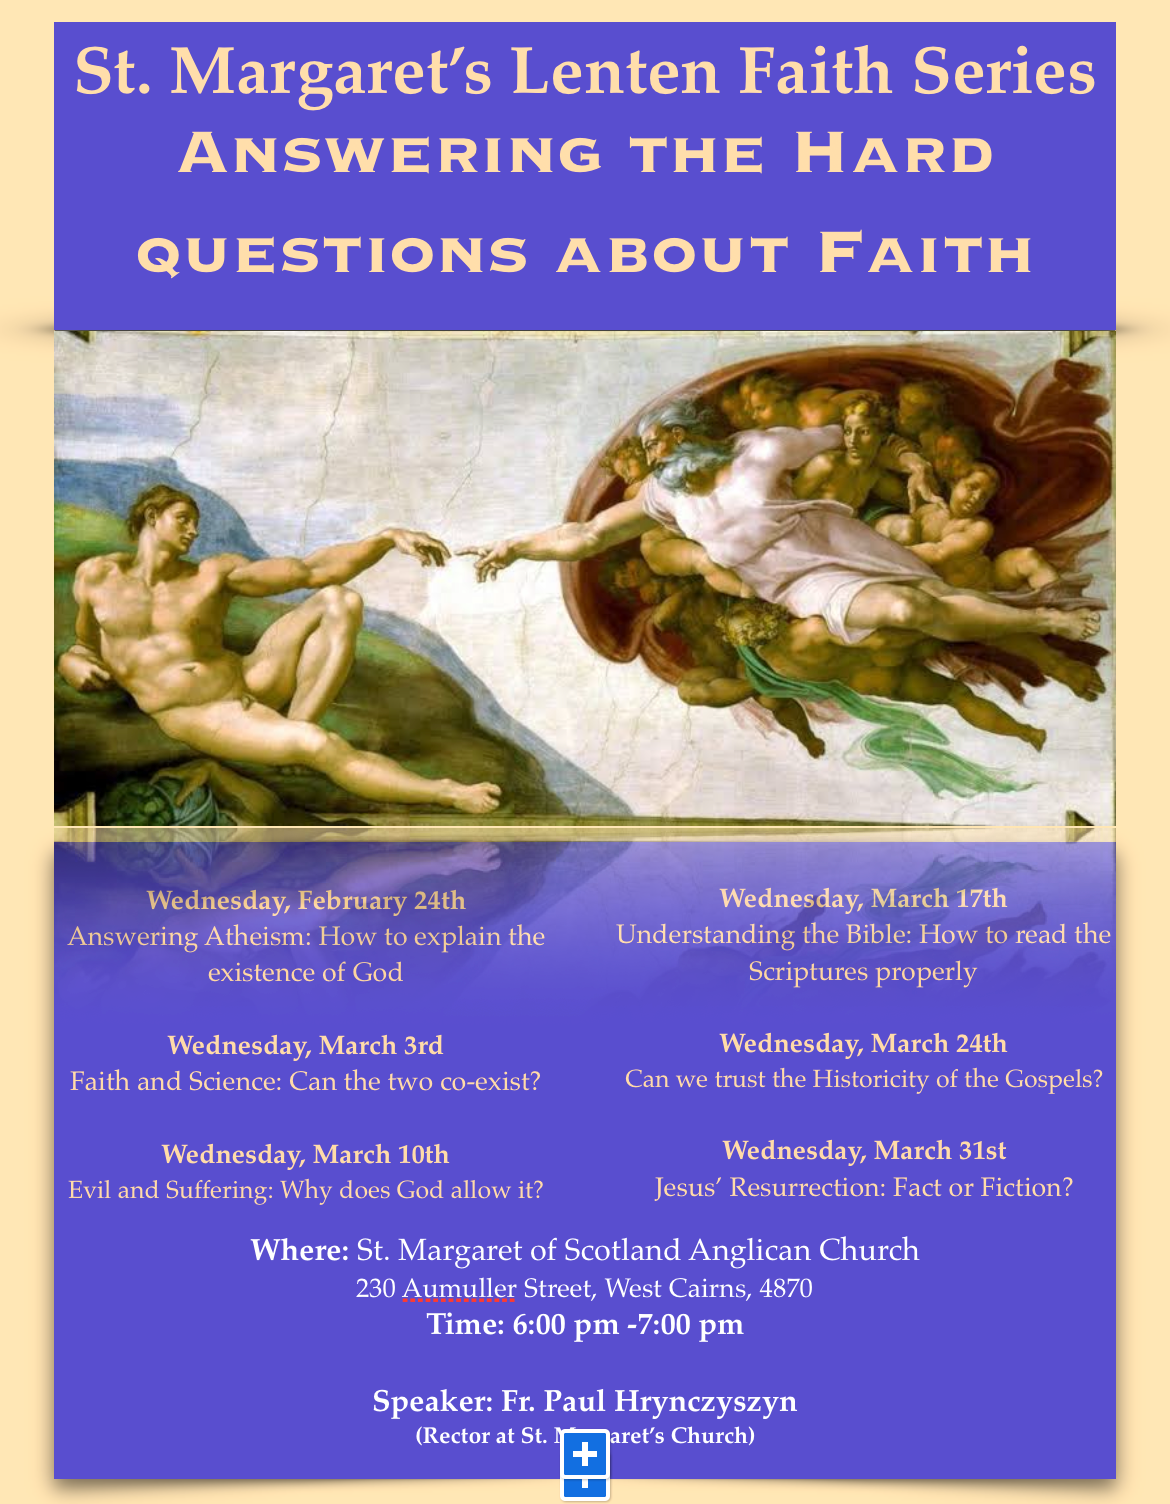 Come and Join us for our Lenten Lecture Series